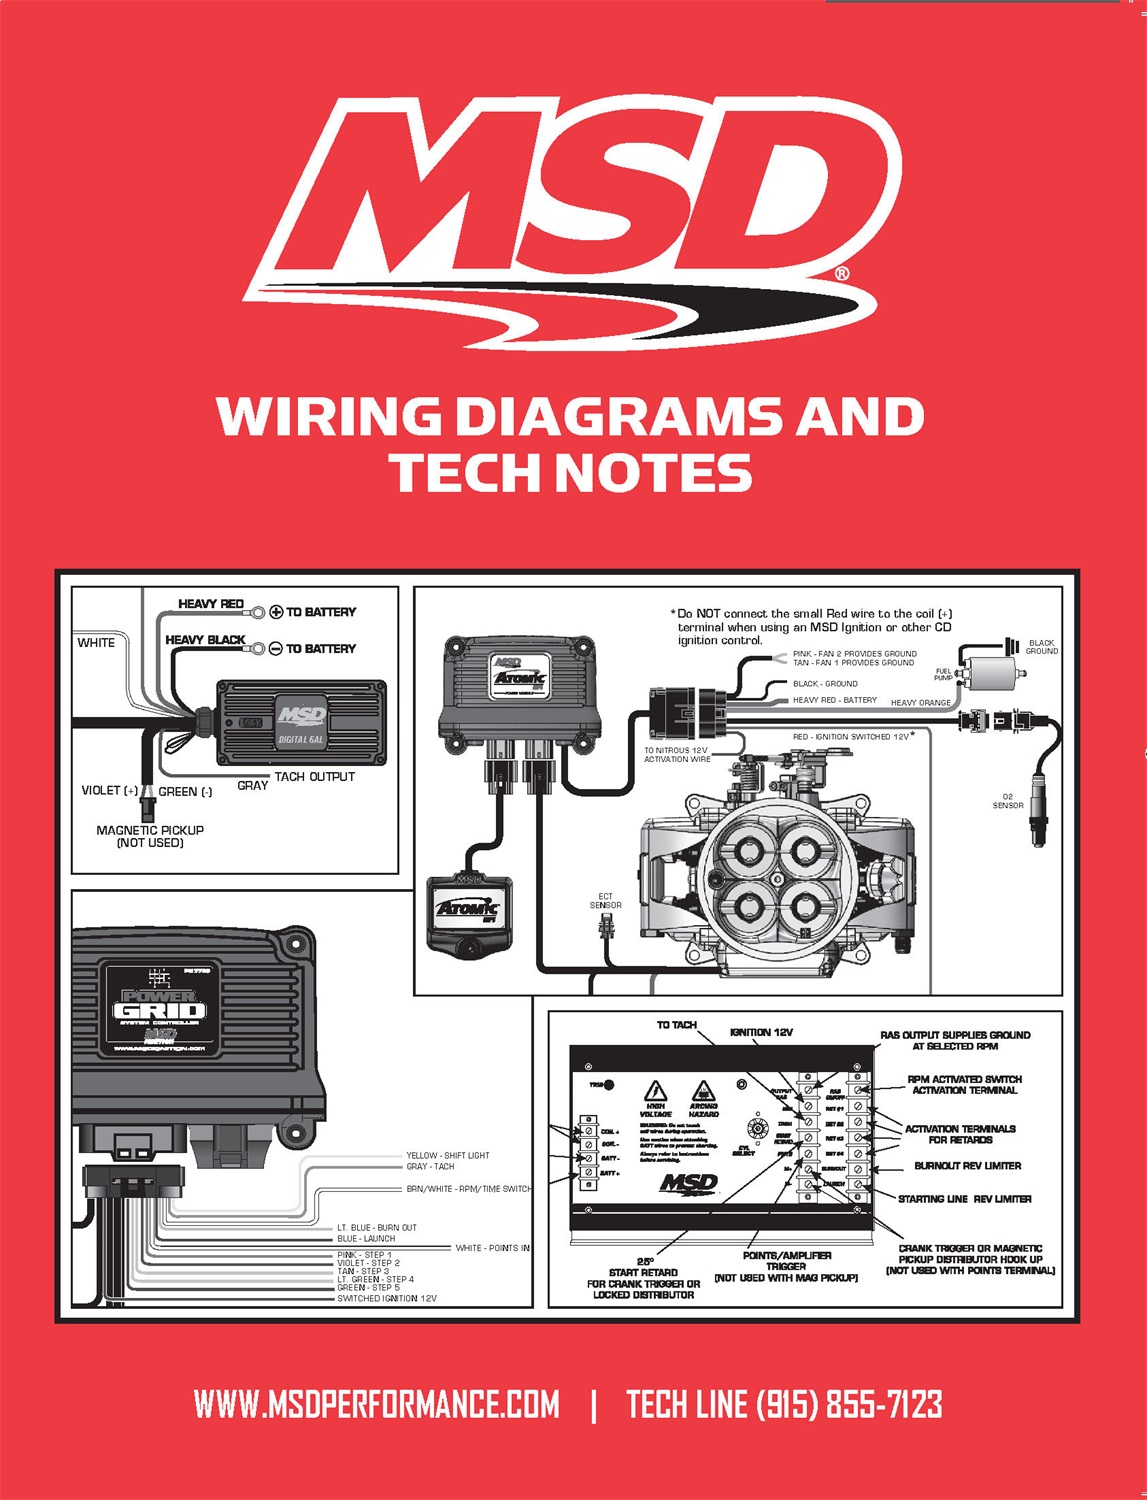 MSD Performance 9615 Wiring Diagrams/Tech Notes